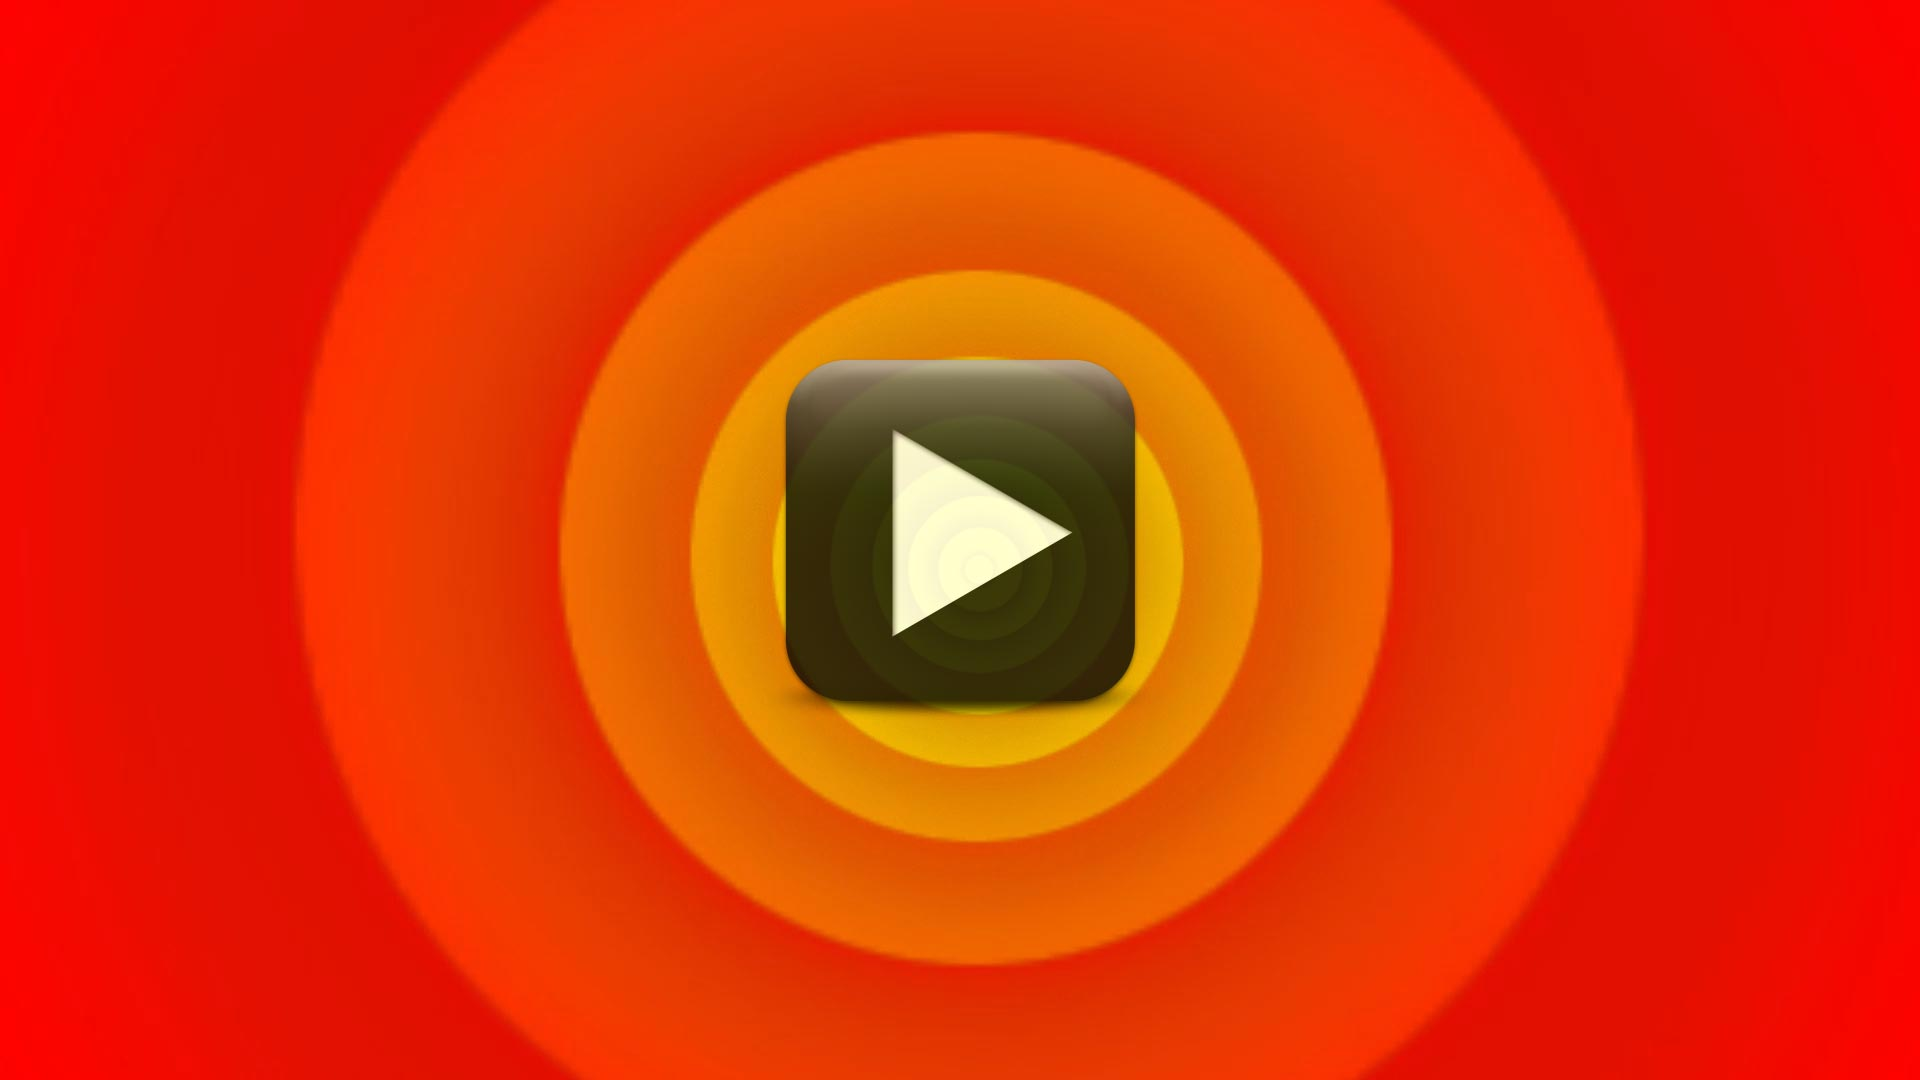 Background Video Effects HD Free Download   All Design Creative